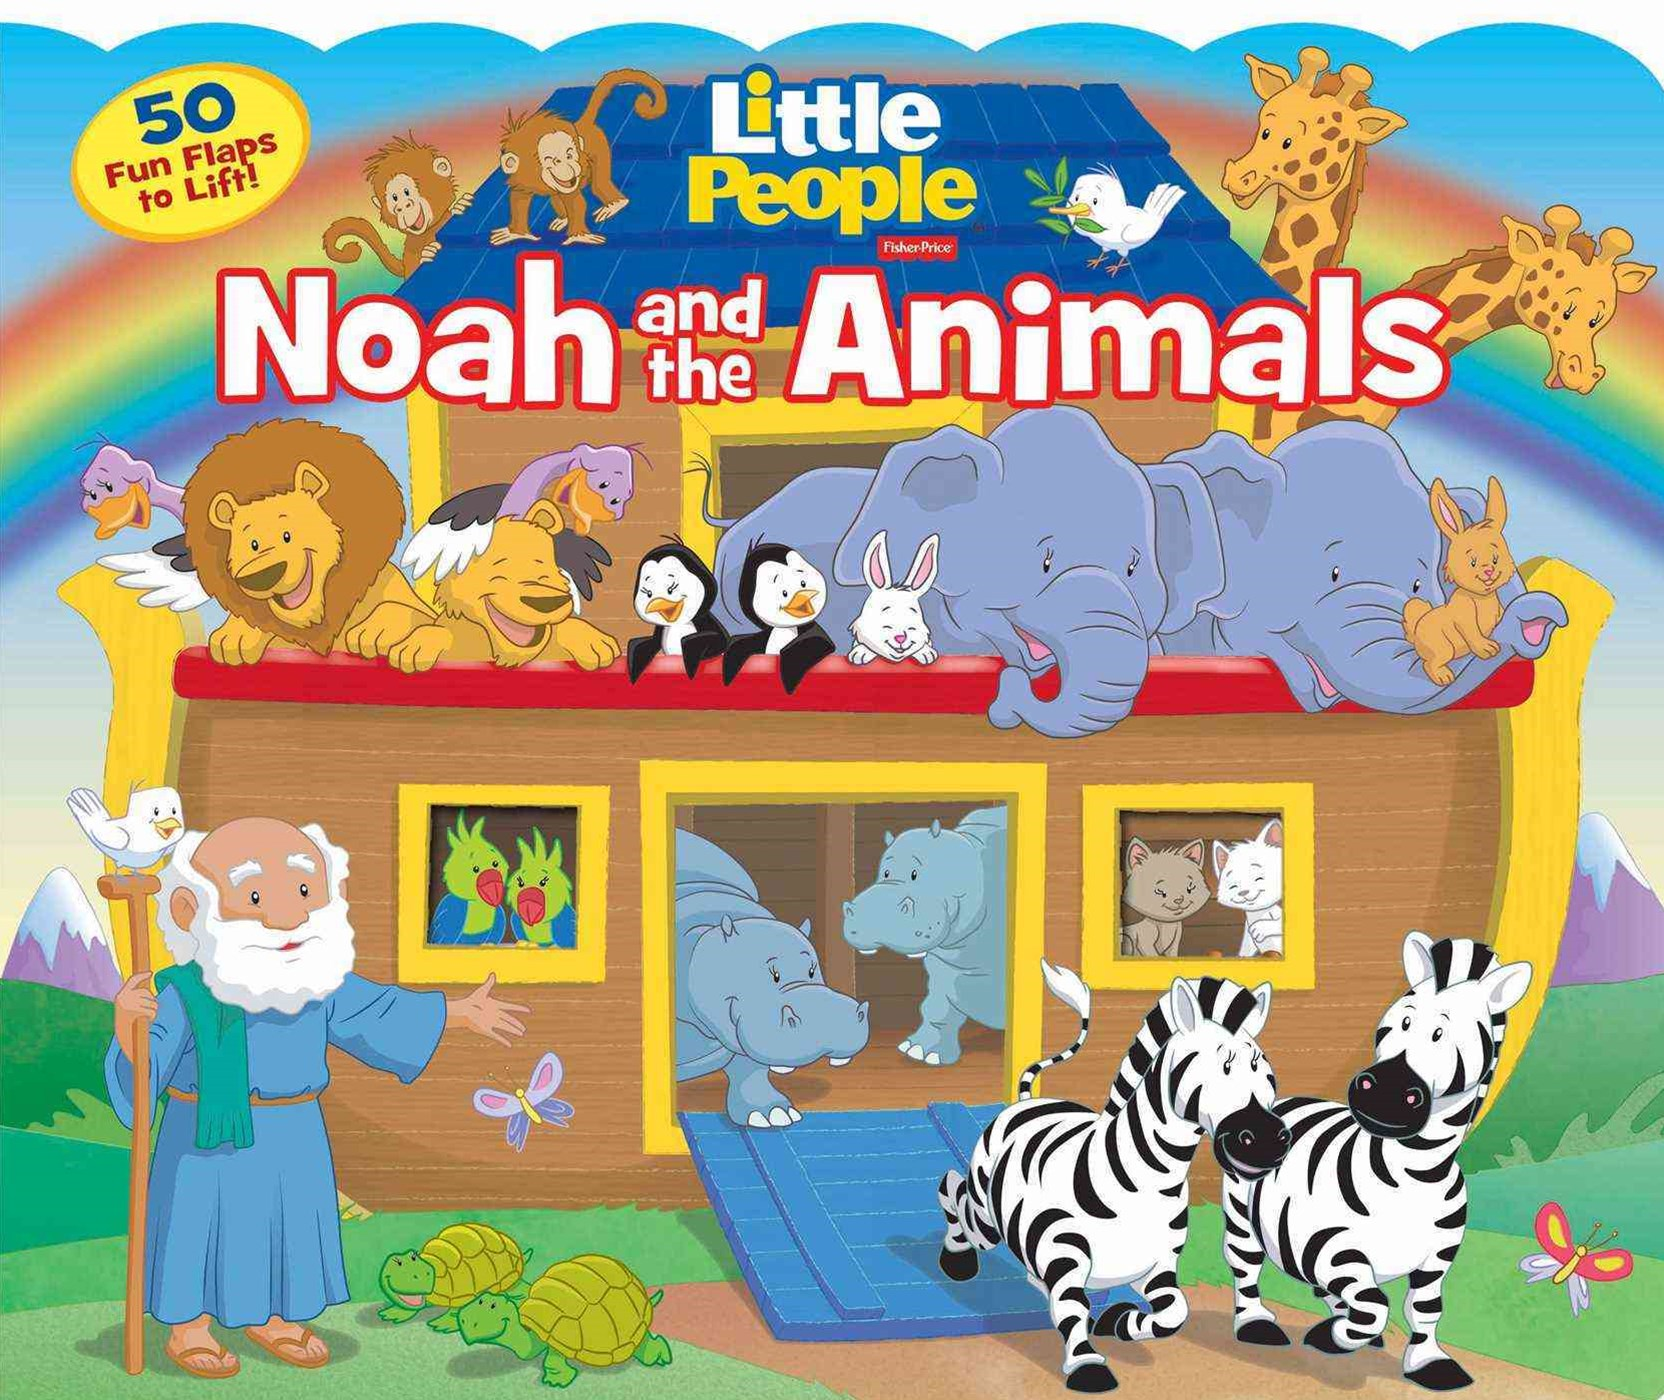 Fisher-Price Little People Noah and the Animals